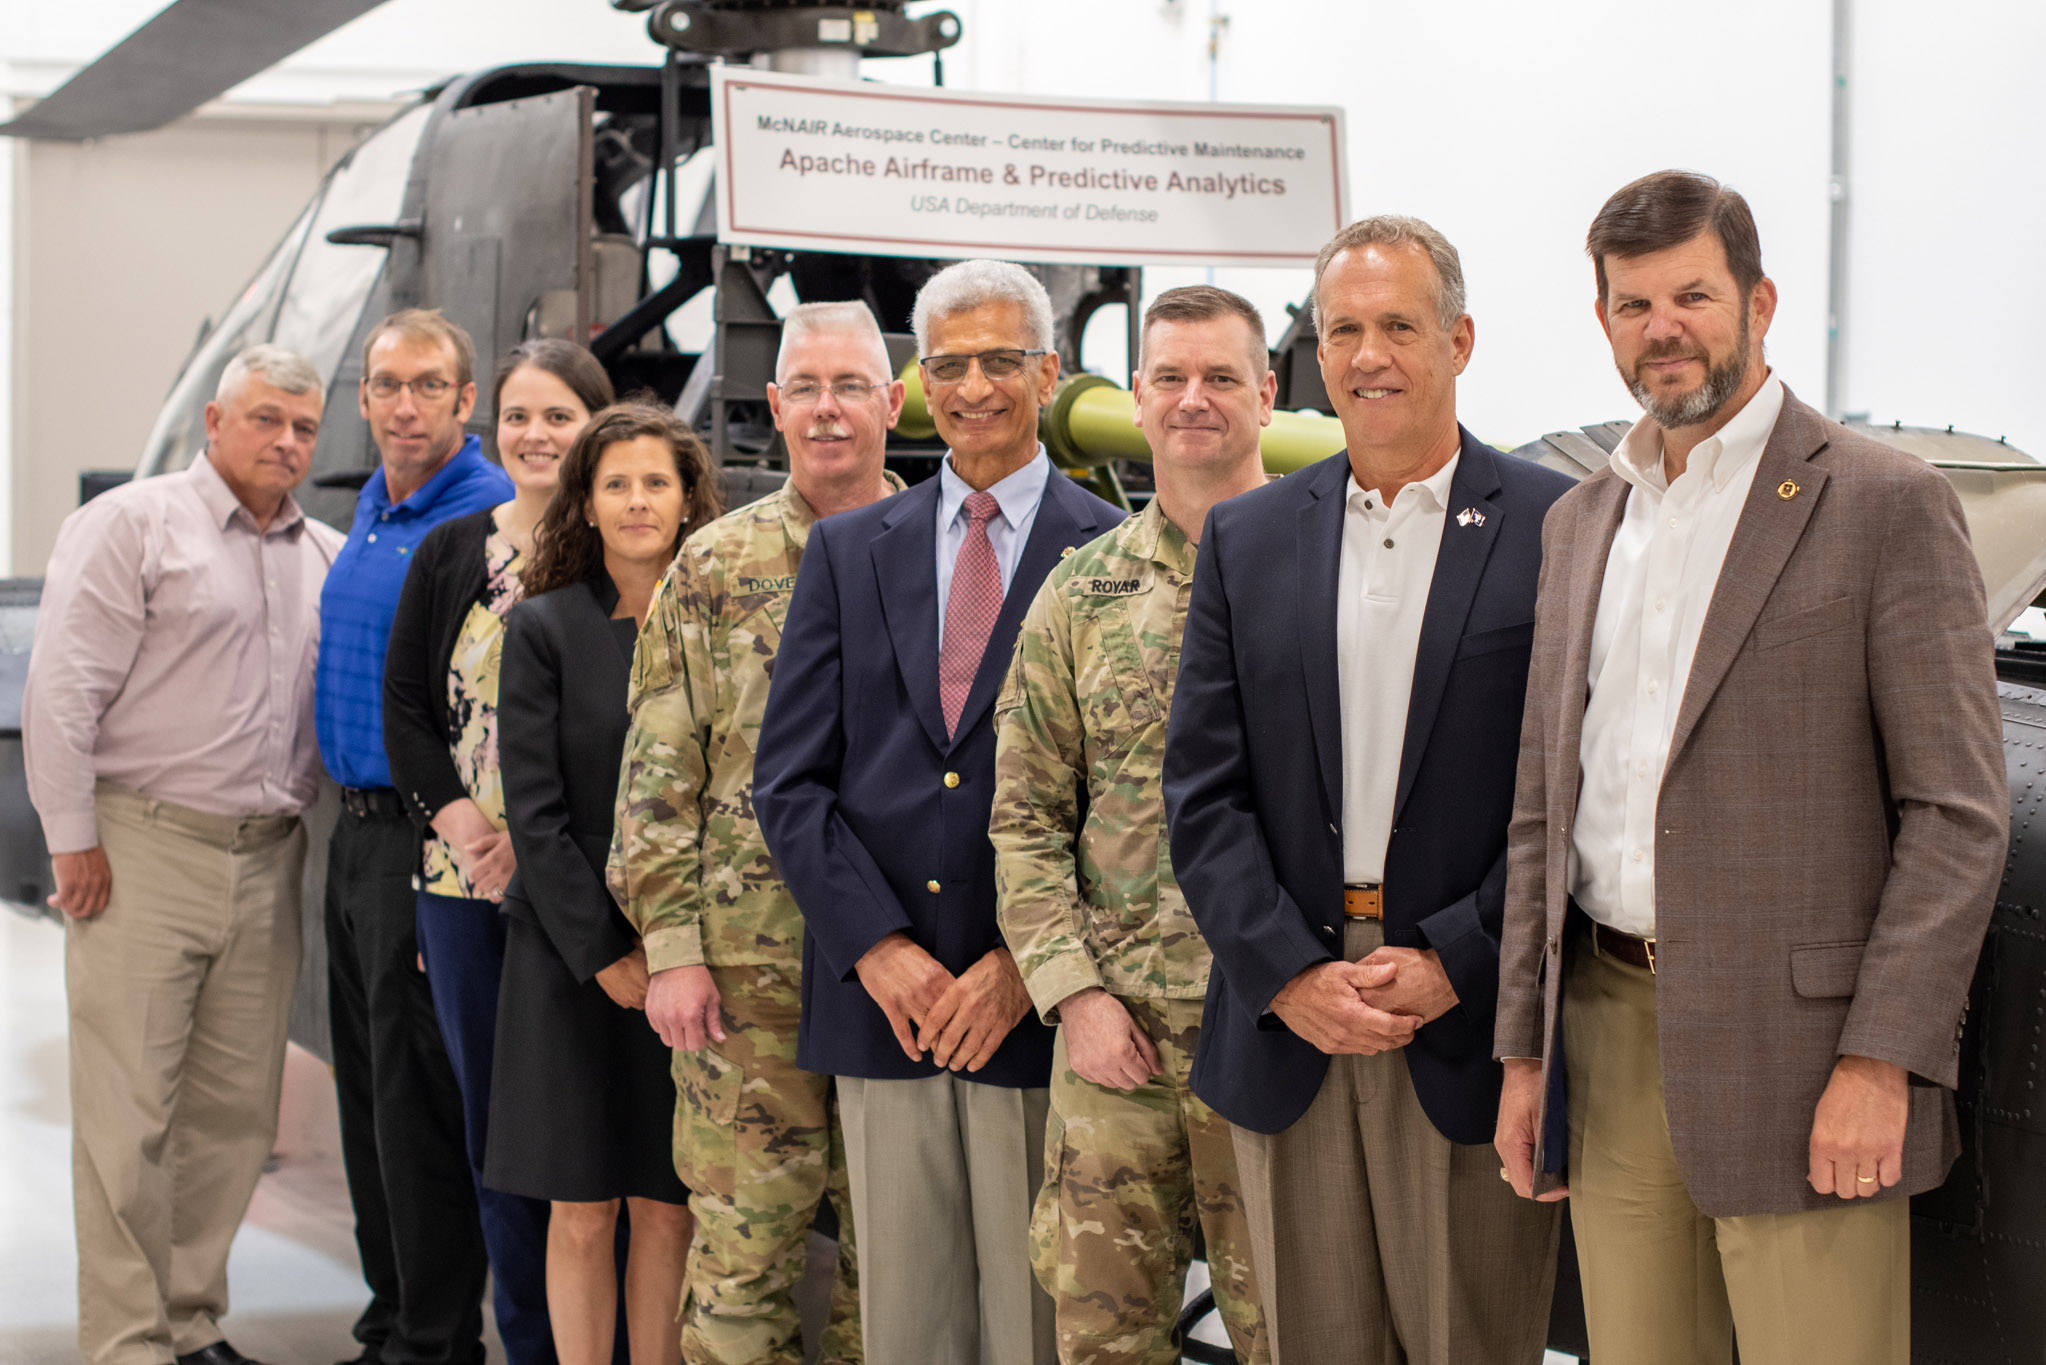 University of South Carolina faculty, staff and Army officials stand in front of an Apache Airframe in the McNair Center.